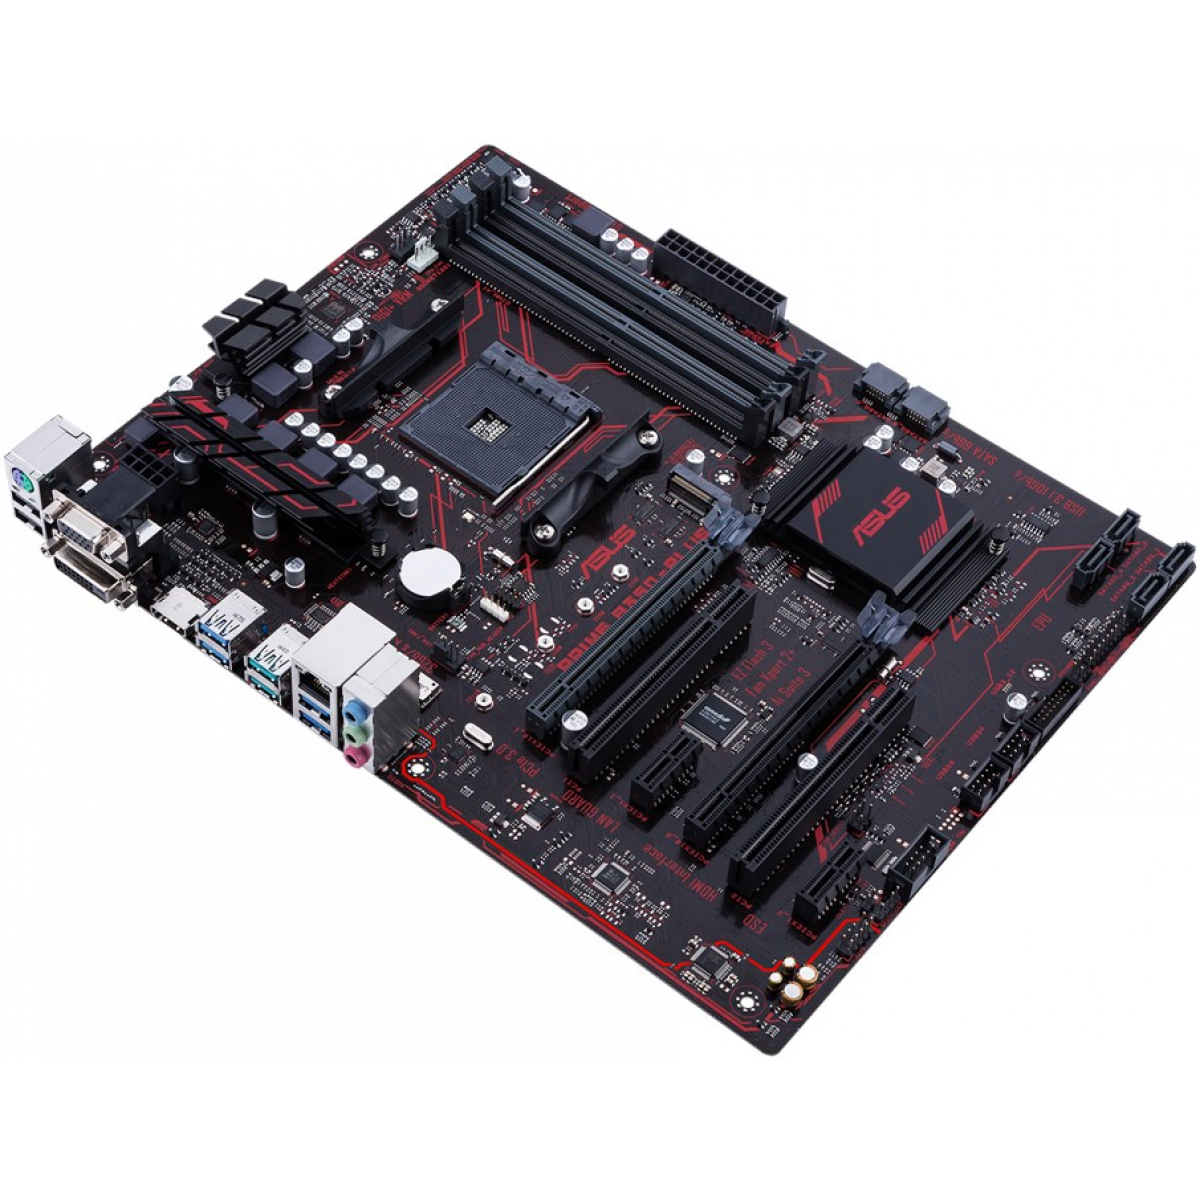 Placa Mãe Asus Prime B350-Plus, Chipset B350, AMD AM4, ATX, DDR4